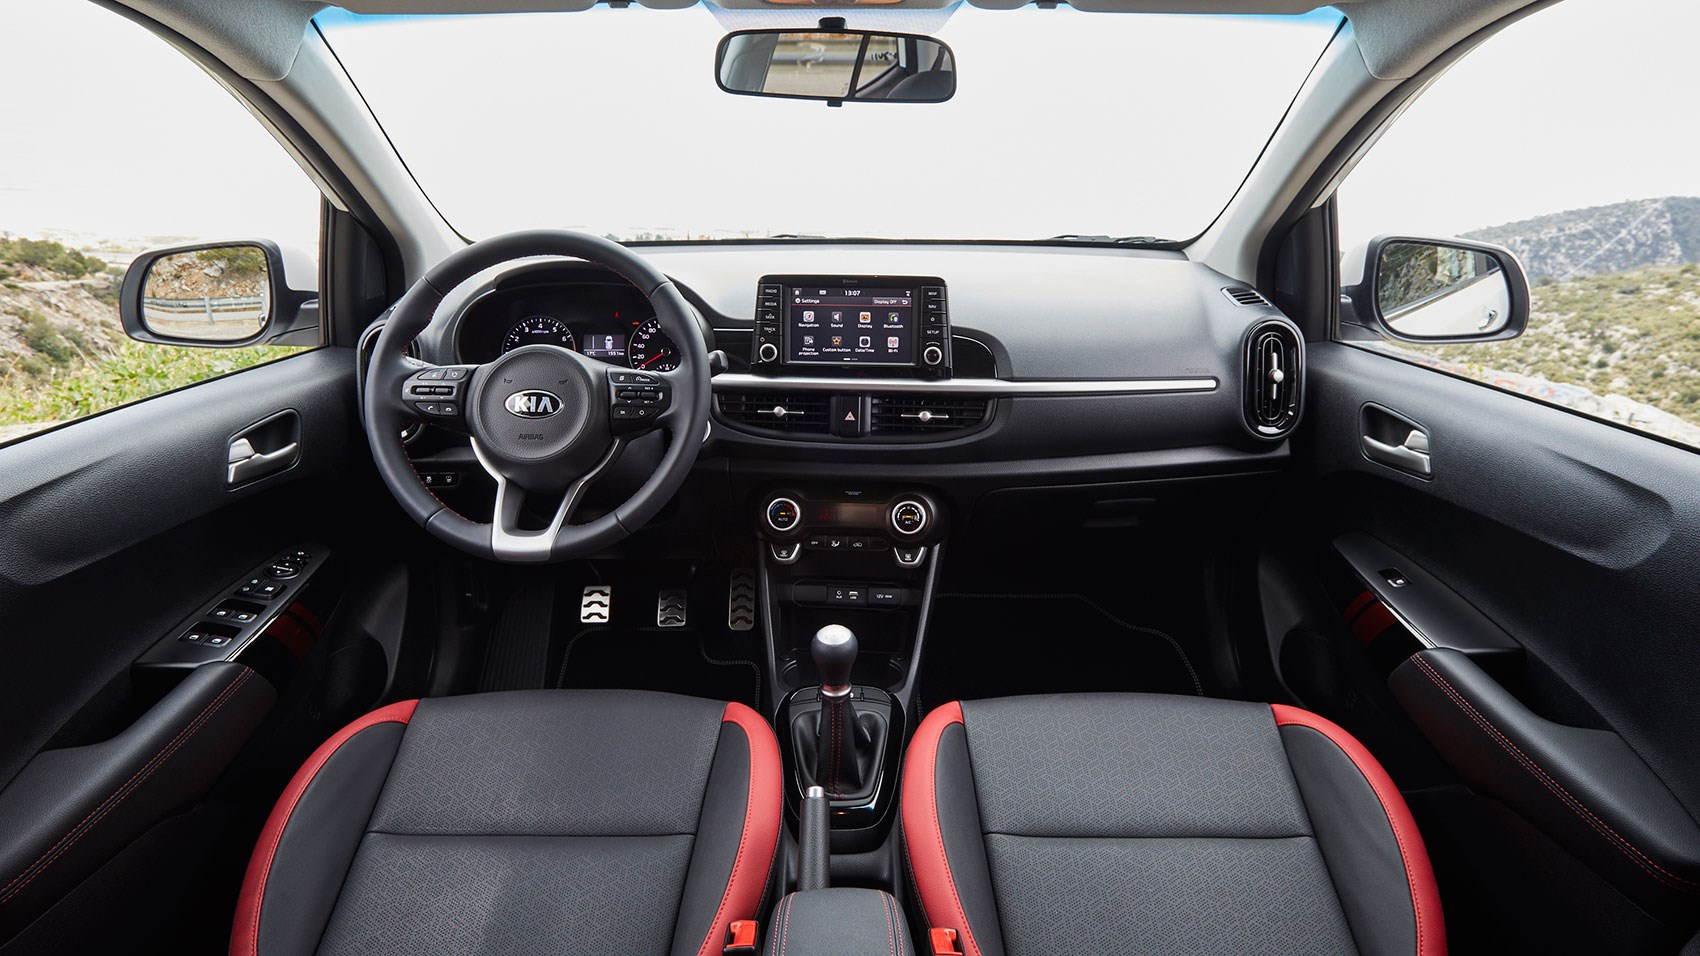 kia picanto 12 gt line 2017 review by car magazine autos post. Black Bedroom Furniture Sets. Home Design Ideas